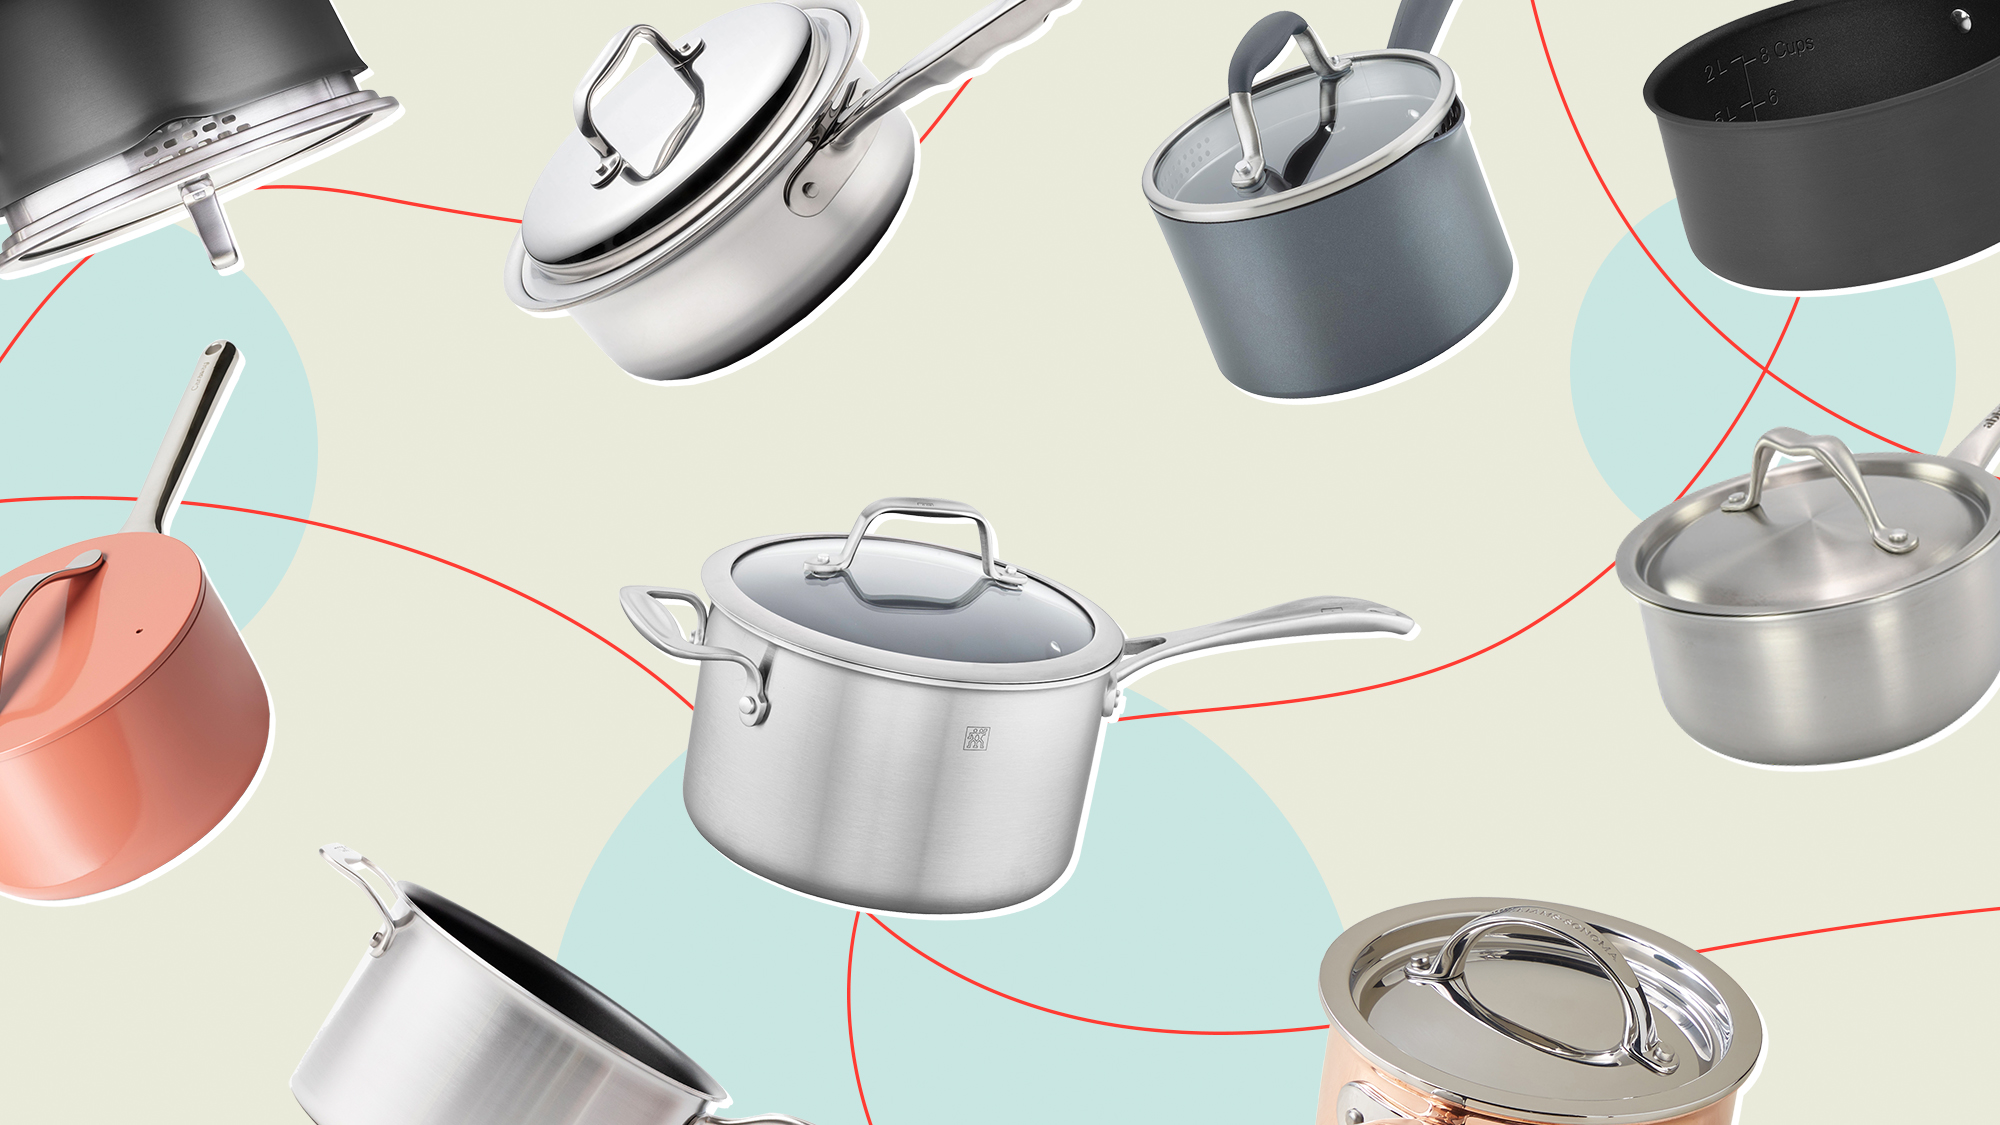 A collection of sauce pans on a designed background